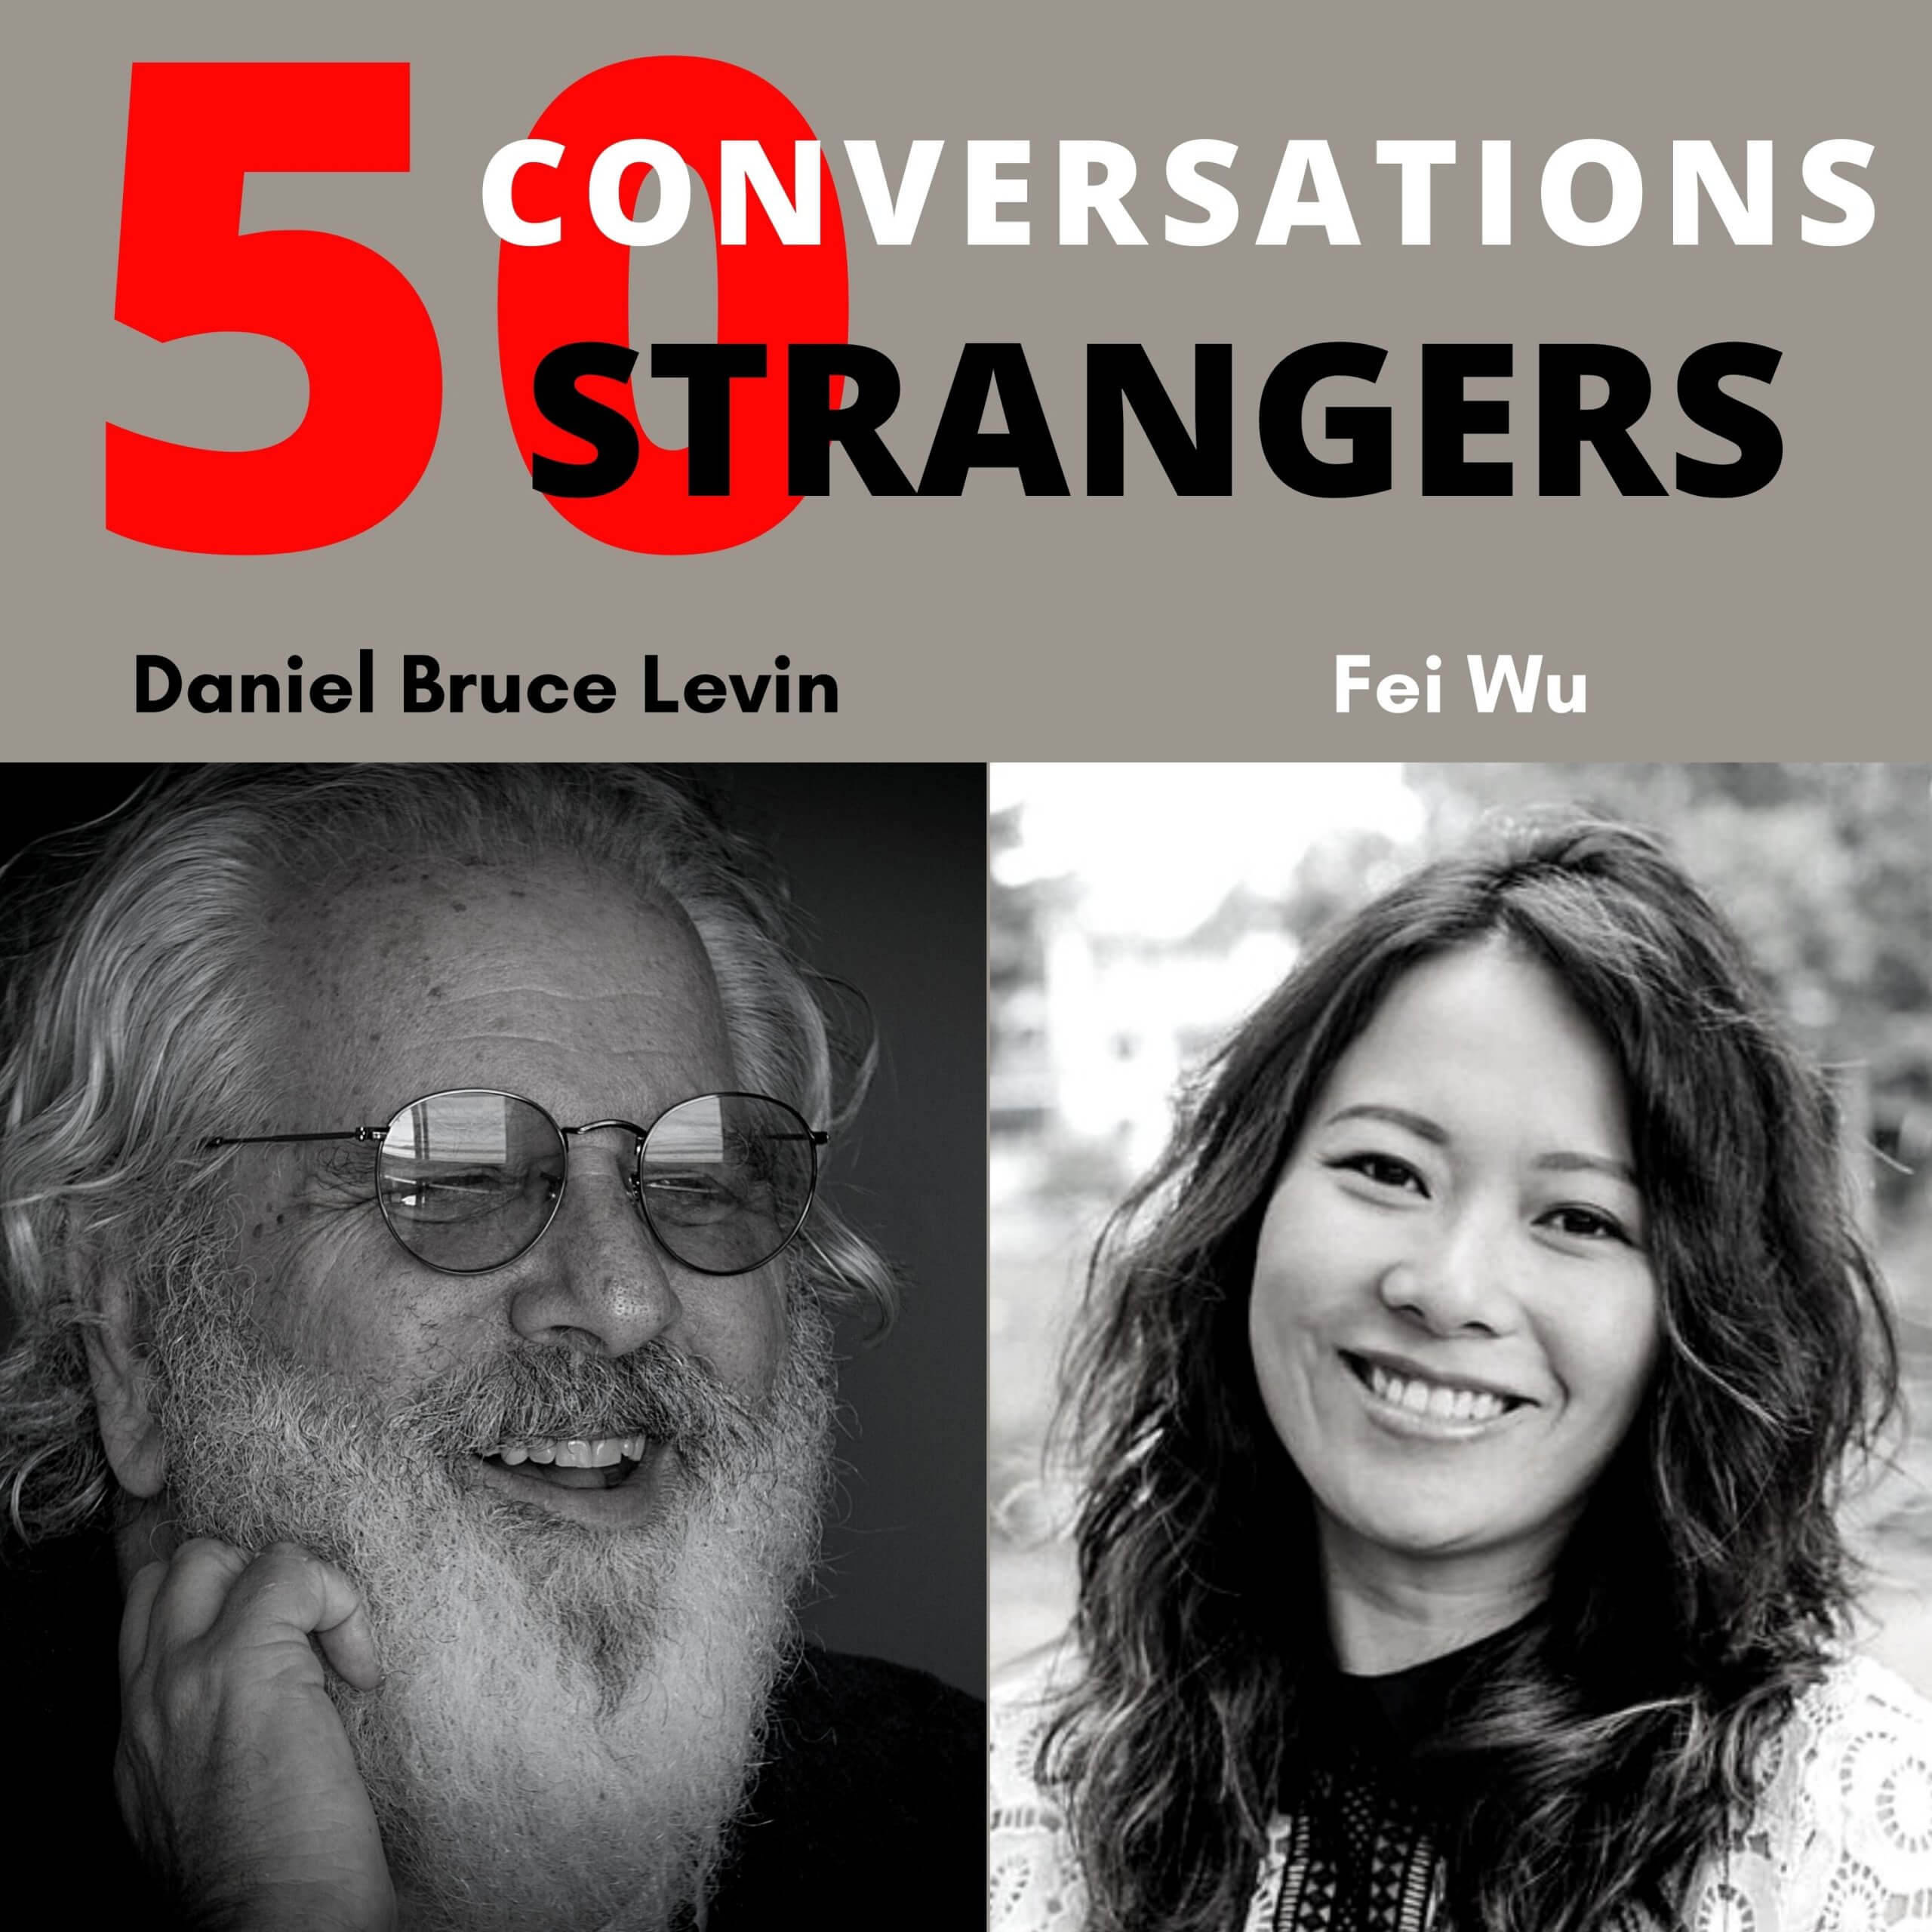 50 Conversations with 50 Strangers with Fei Wu